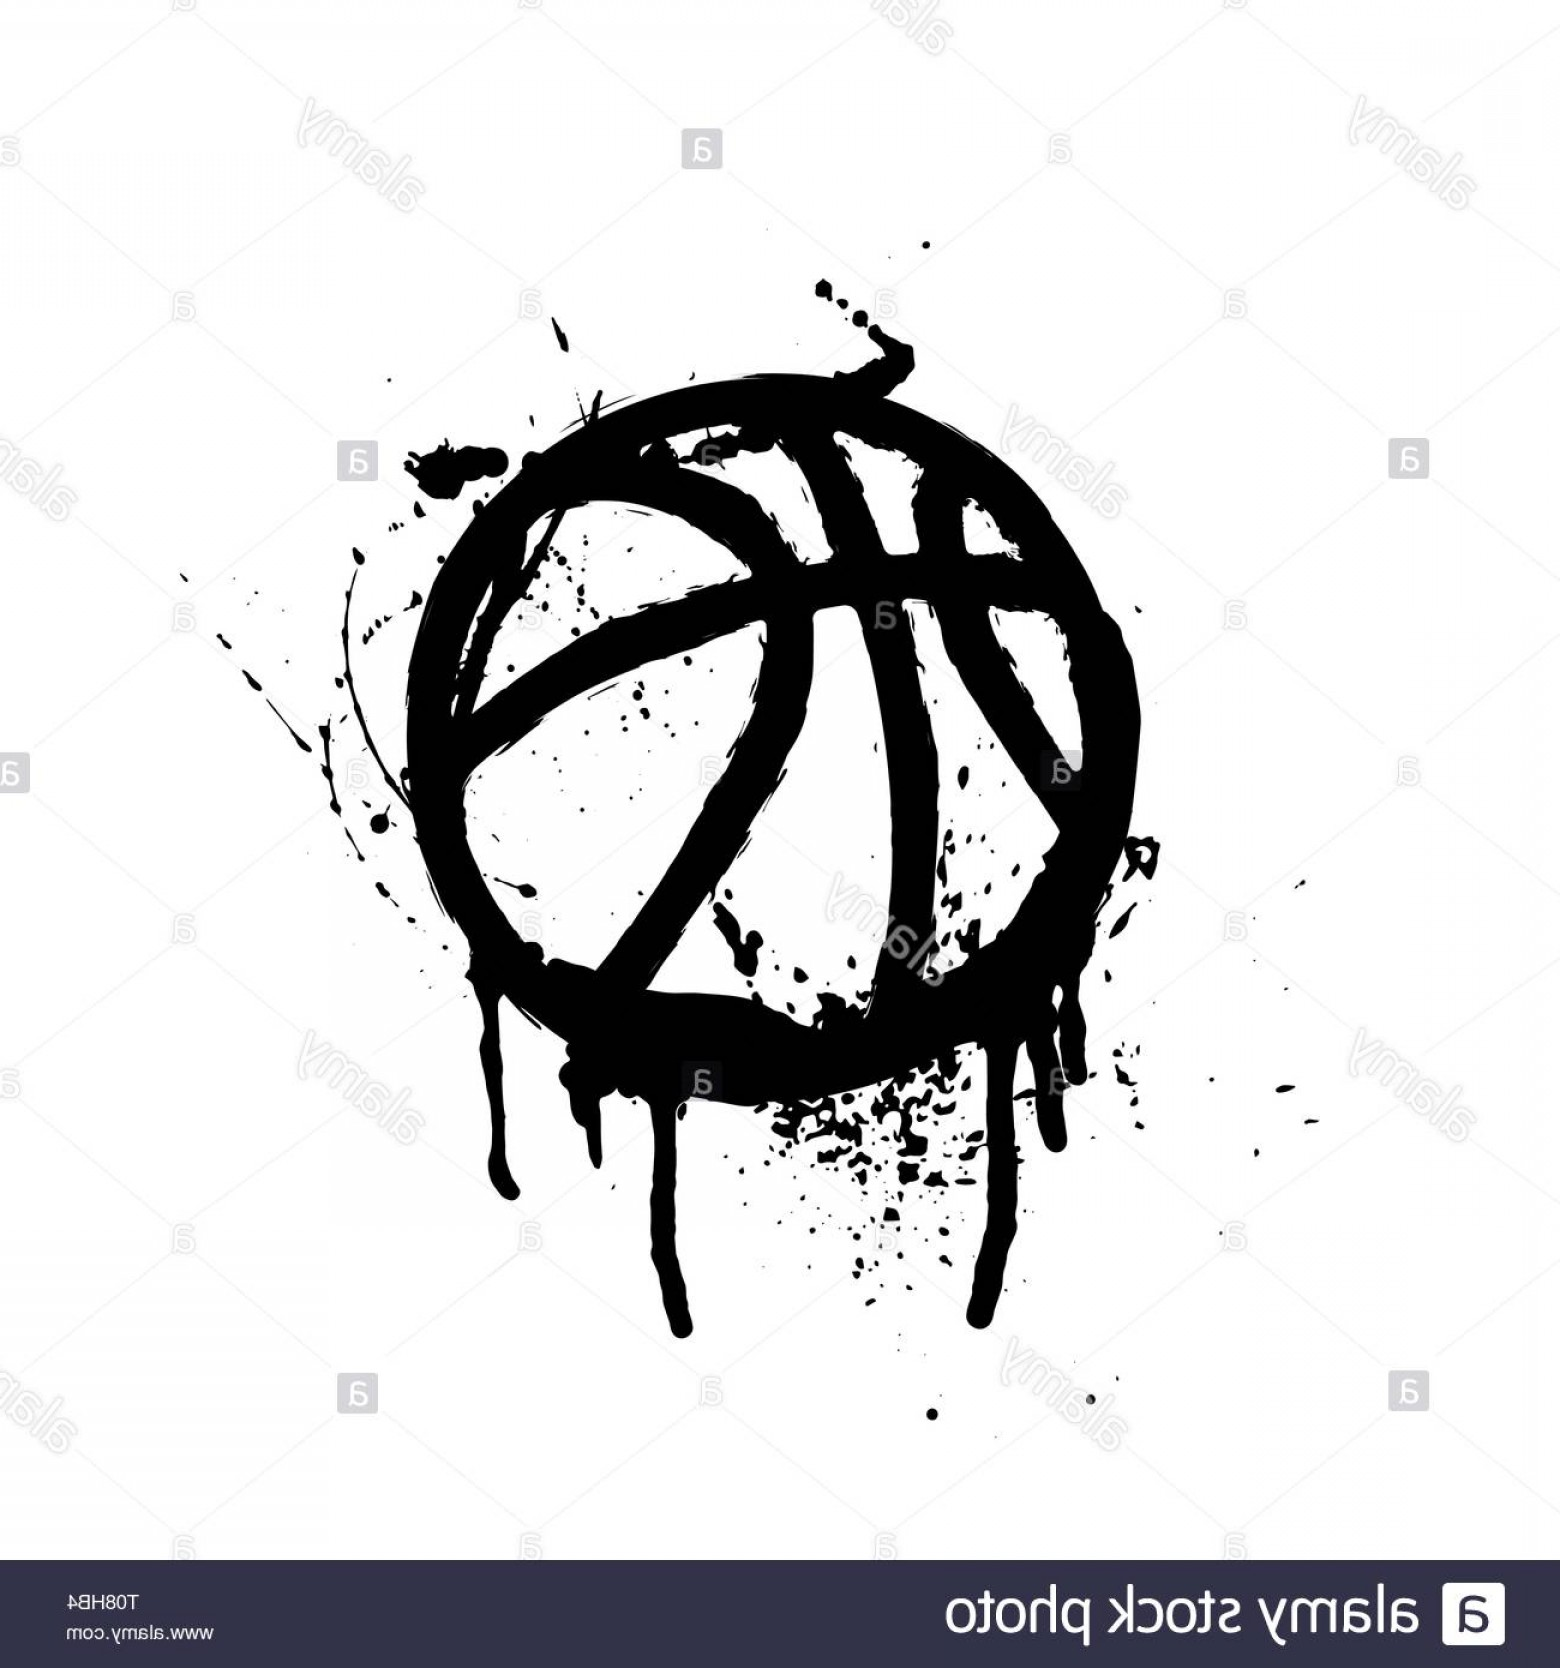 Grunge Basketball Vector: Black Grunge Basketball Silhouette Isolated On White Image